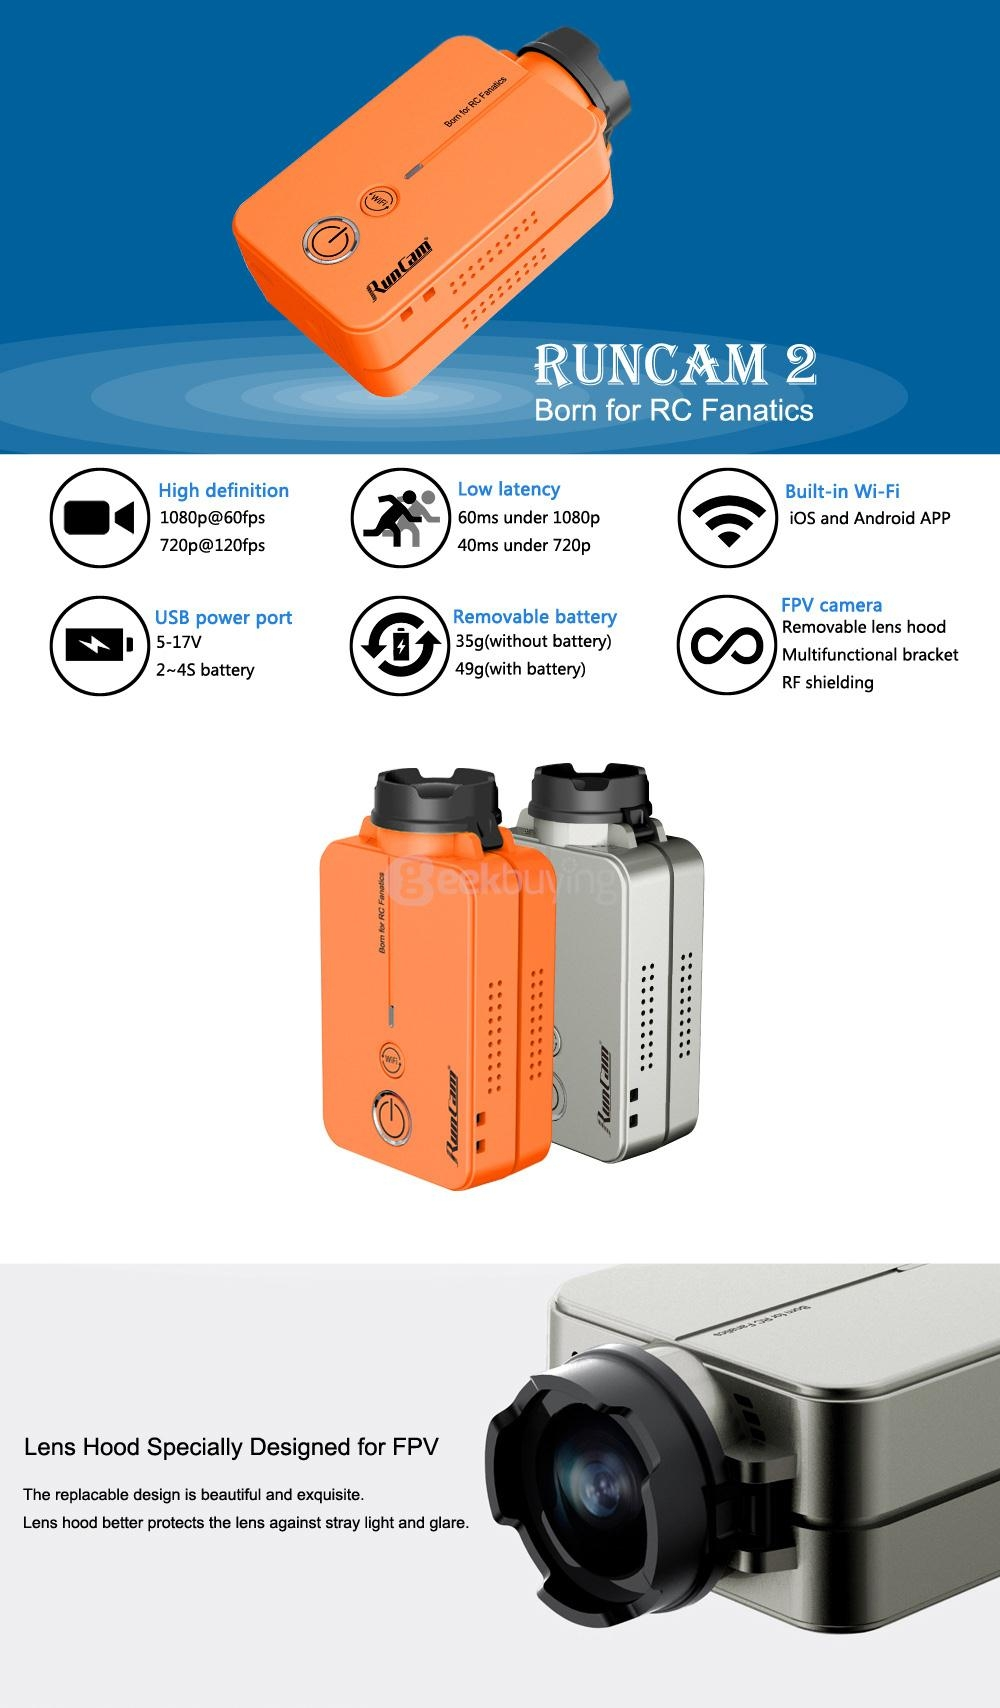 RunCam 2 RunCam2 1080P HD 120 Degree Wide Angle WiFi FPV Camera - Silver